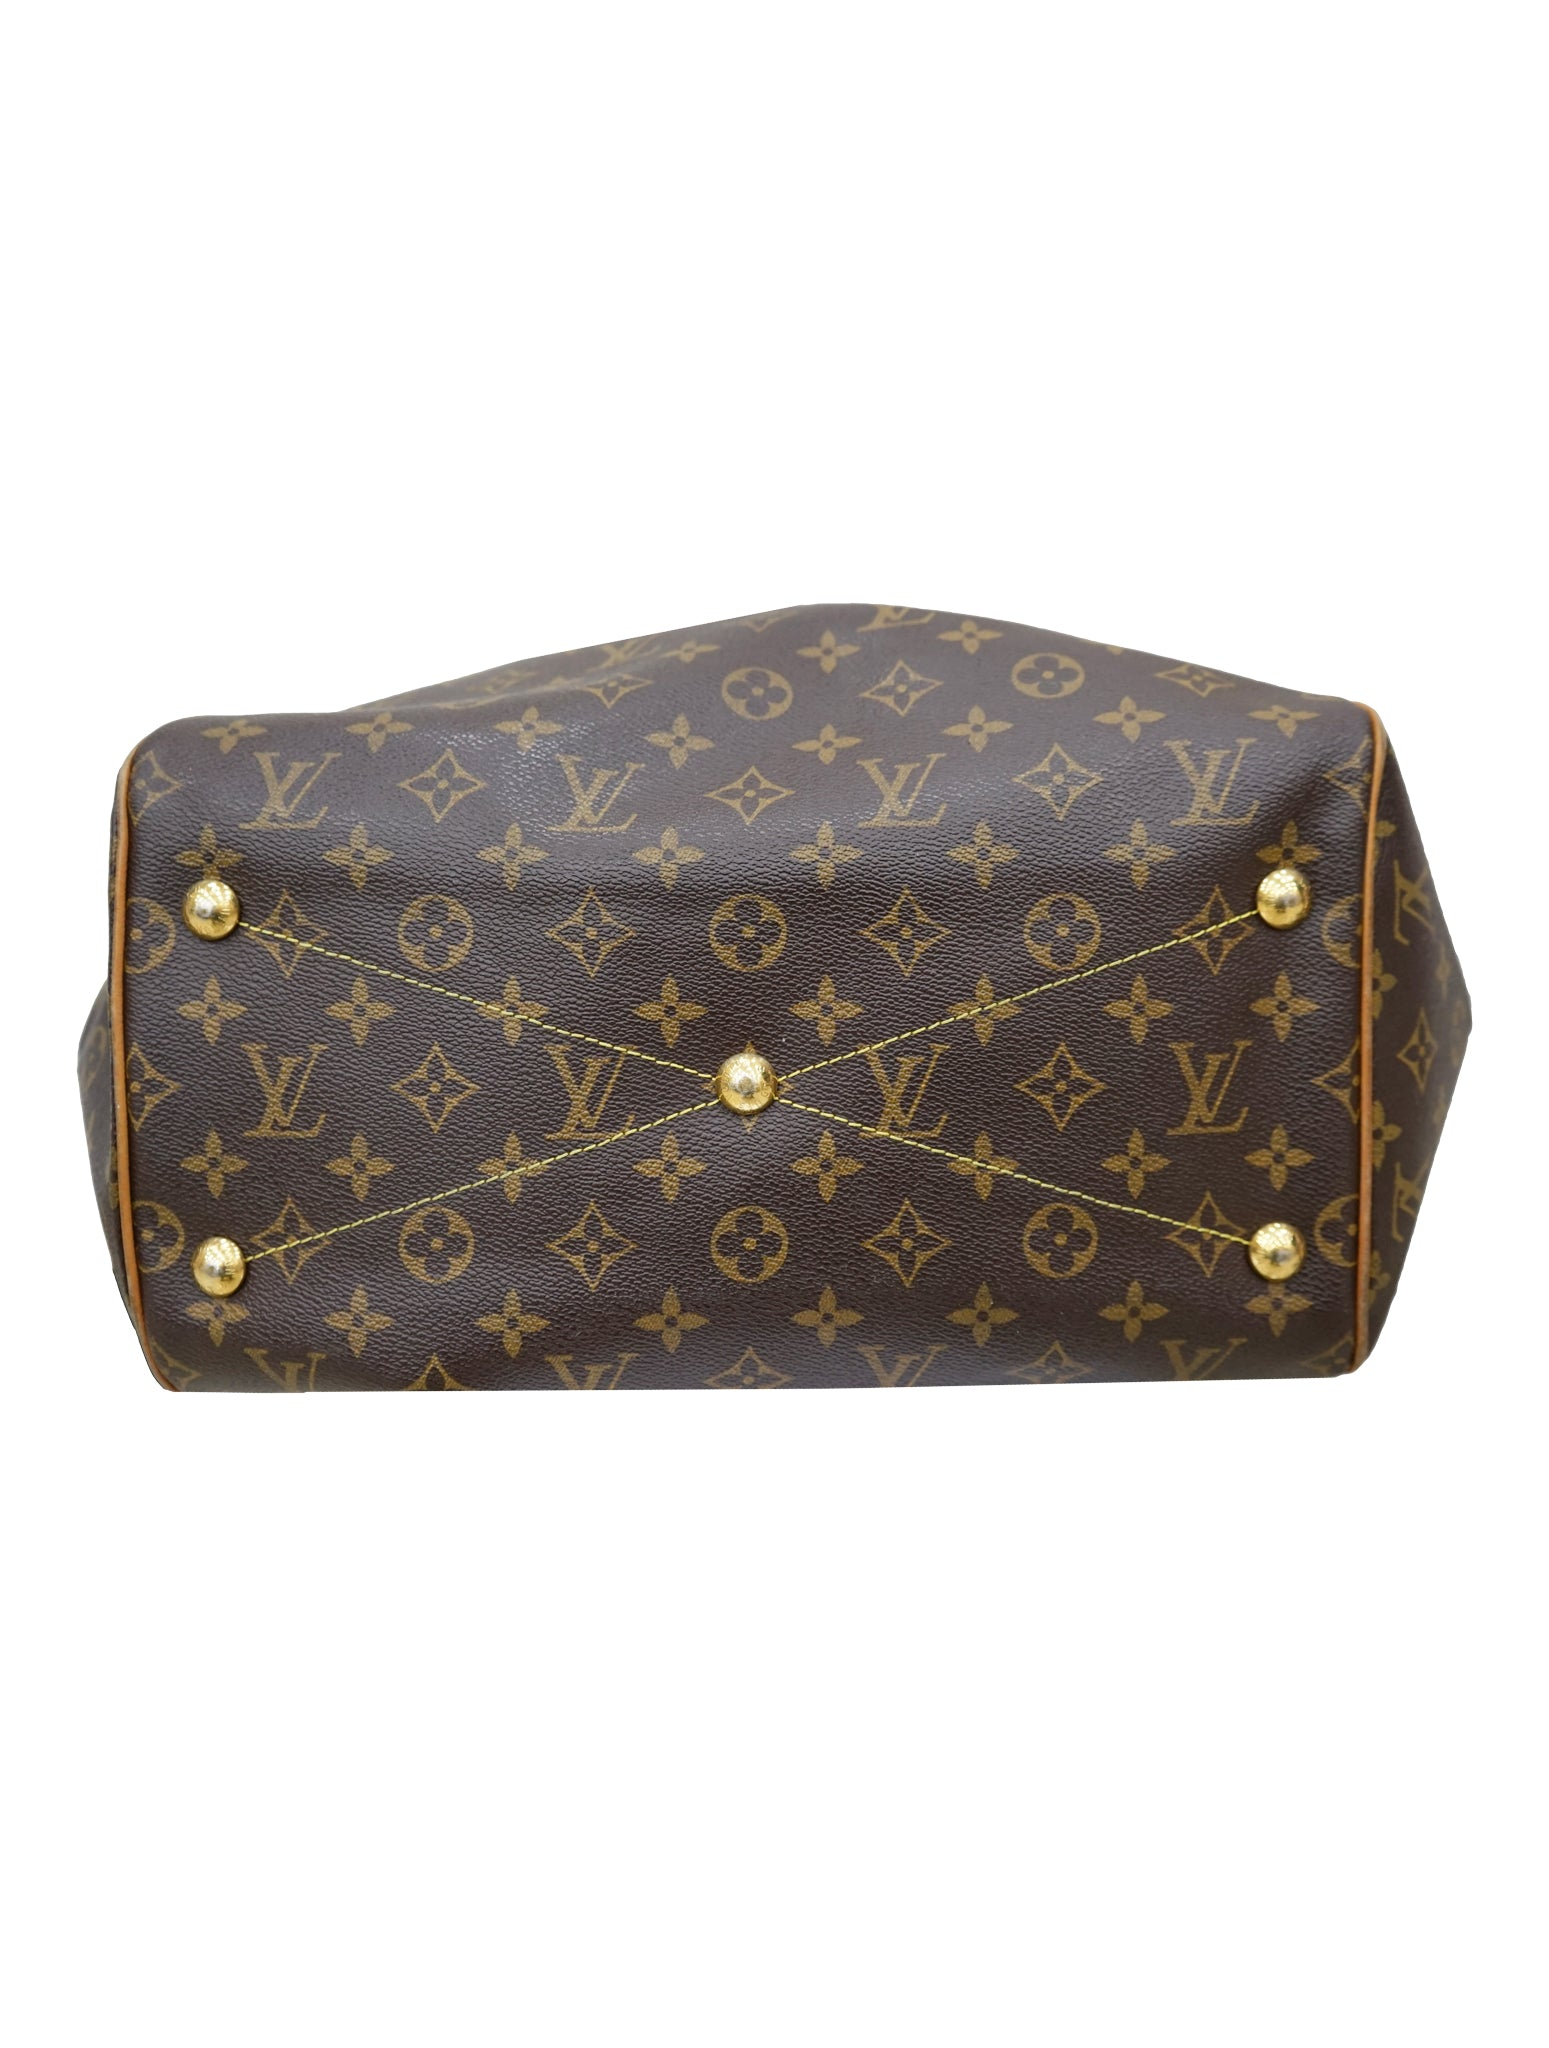 TIVOLI MONOGRAM SHOULDER BAG